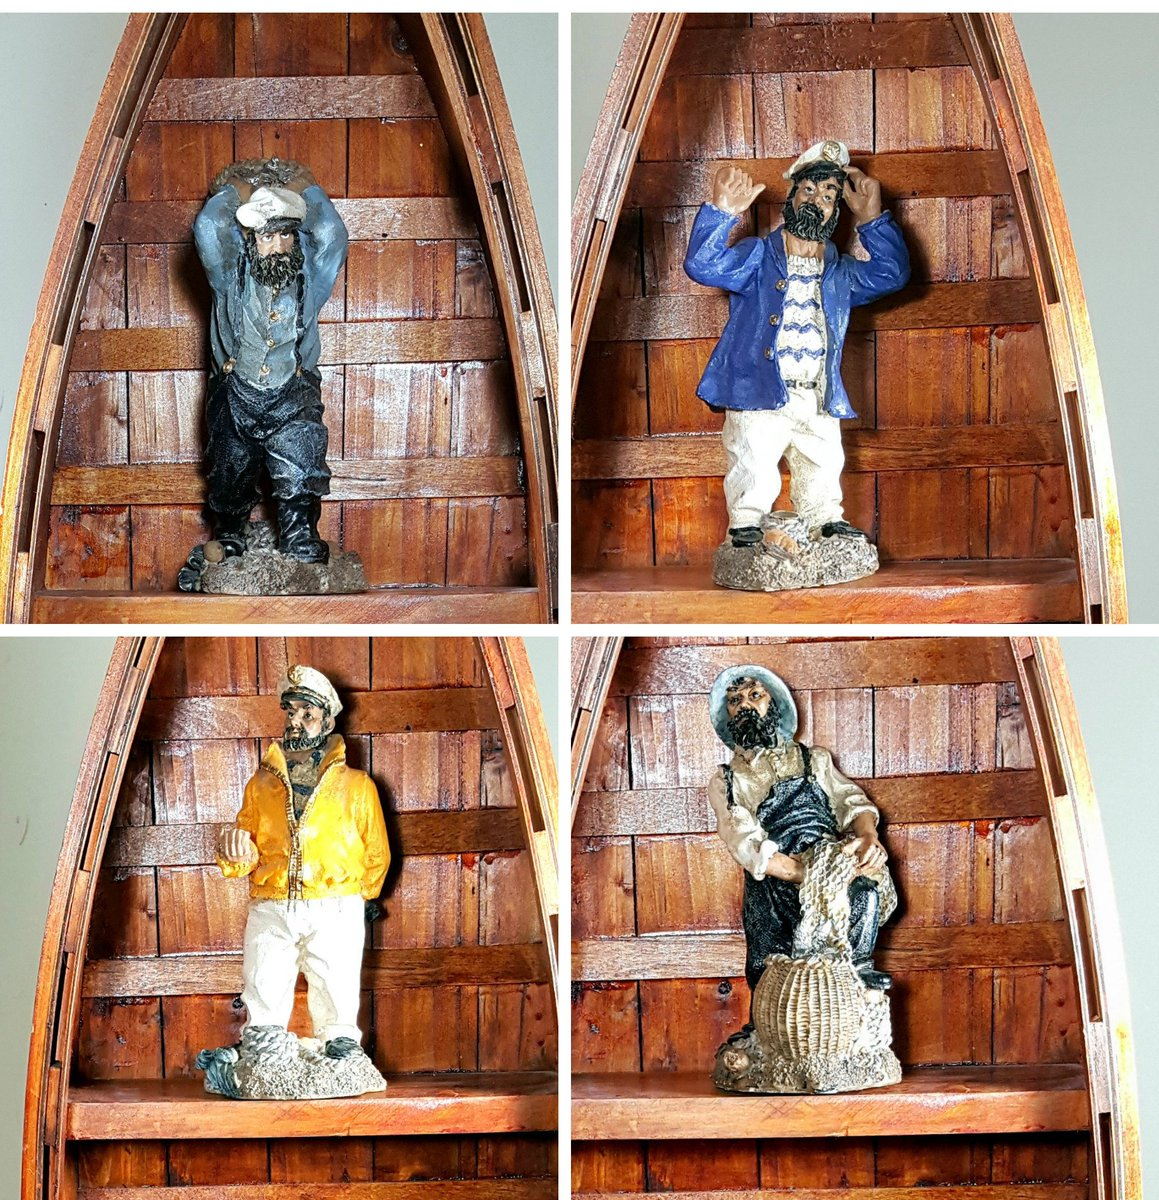 Rustic SEA CAPTAIN FIGURINES Nautical Decor Beach Coastal Decor Figures o…  http:// etsy.me/2x3gAHE  &nbsp;   #vintage #ManCave <br>http://pic.twitter.com/0Wb25JH44b